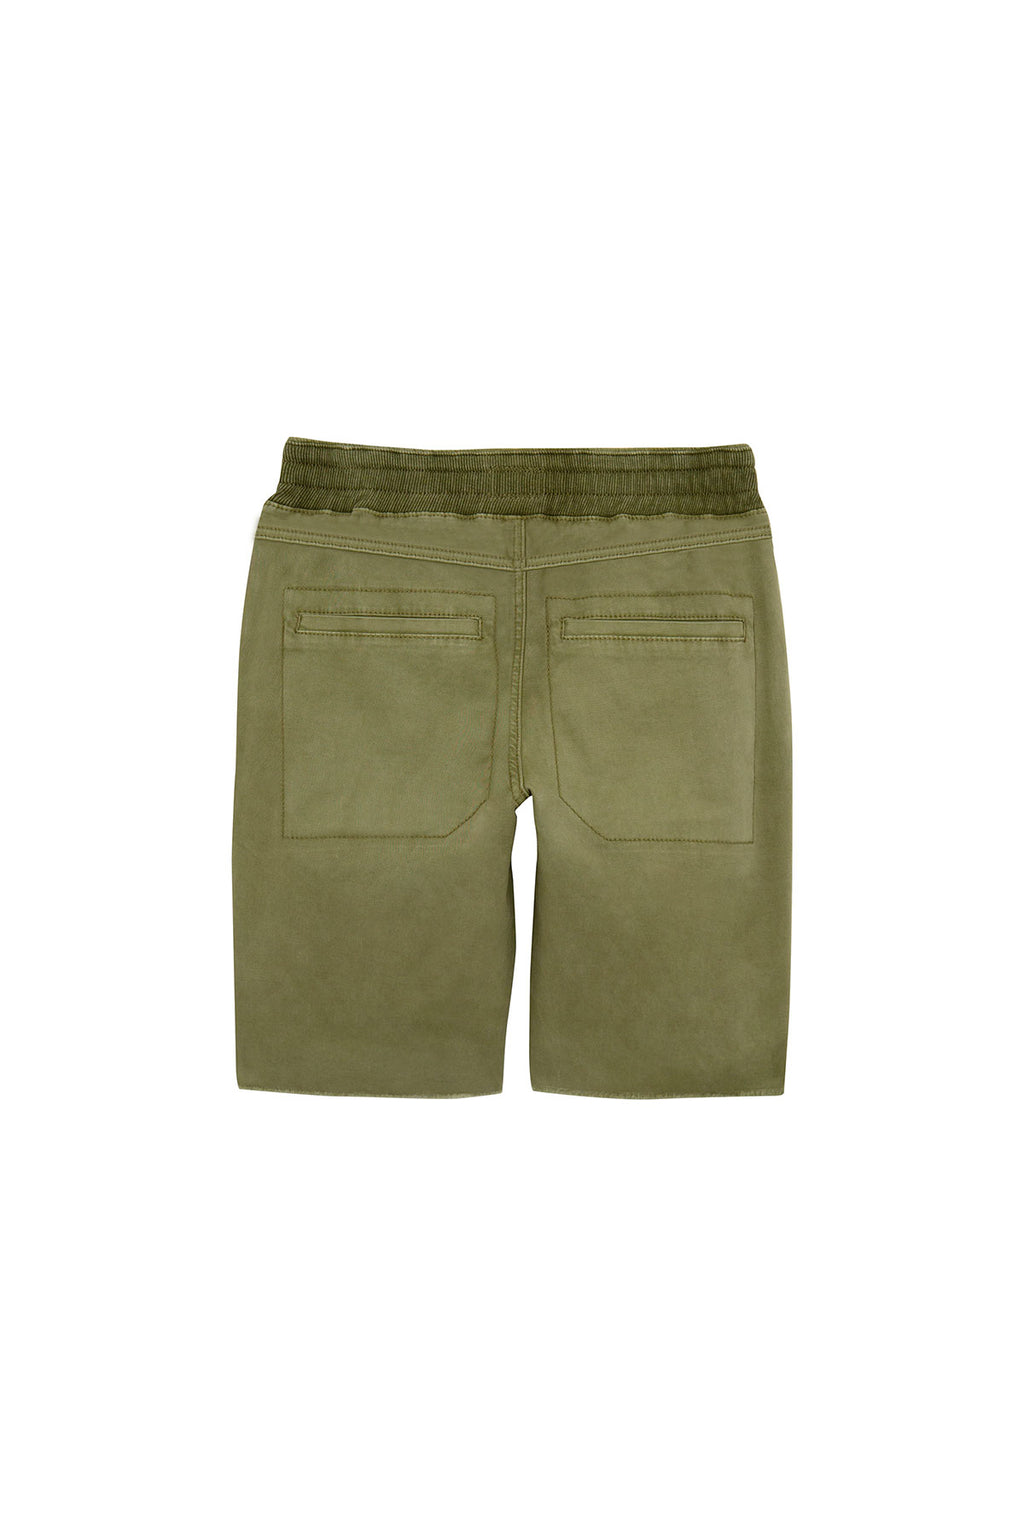 BOYS SHAW SHORT, SIZES 8-20 - MOSS - Image 1